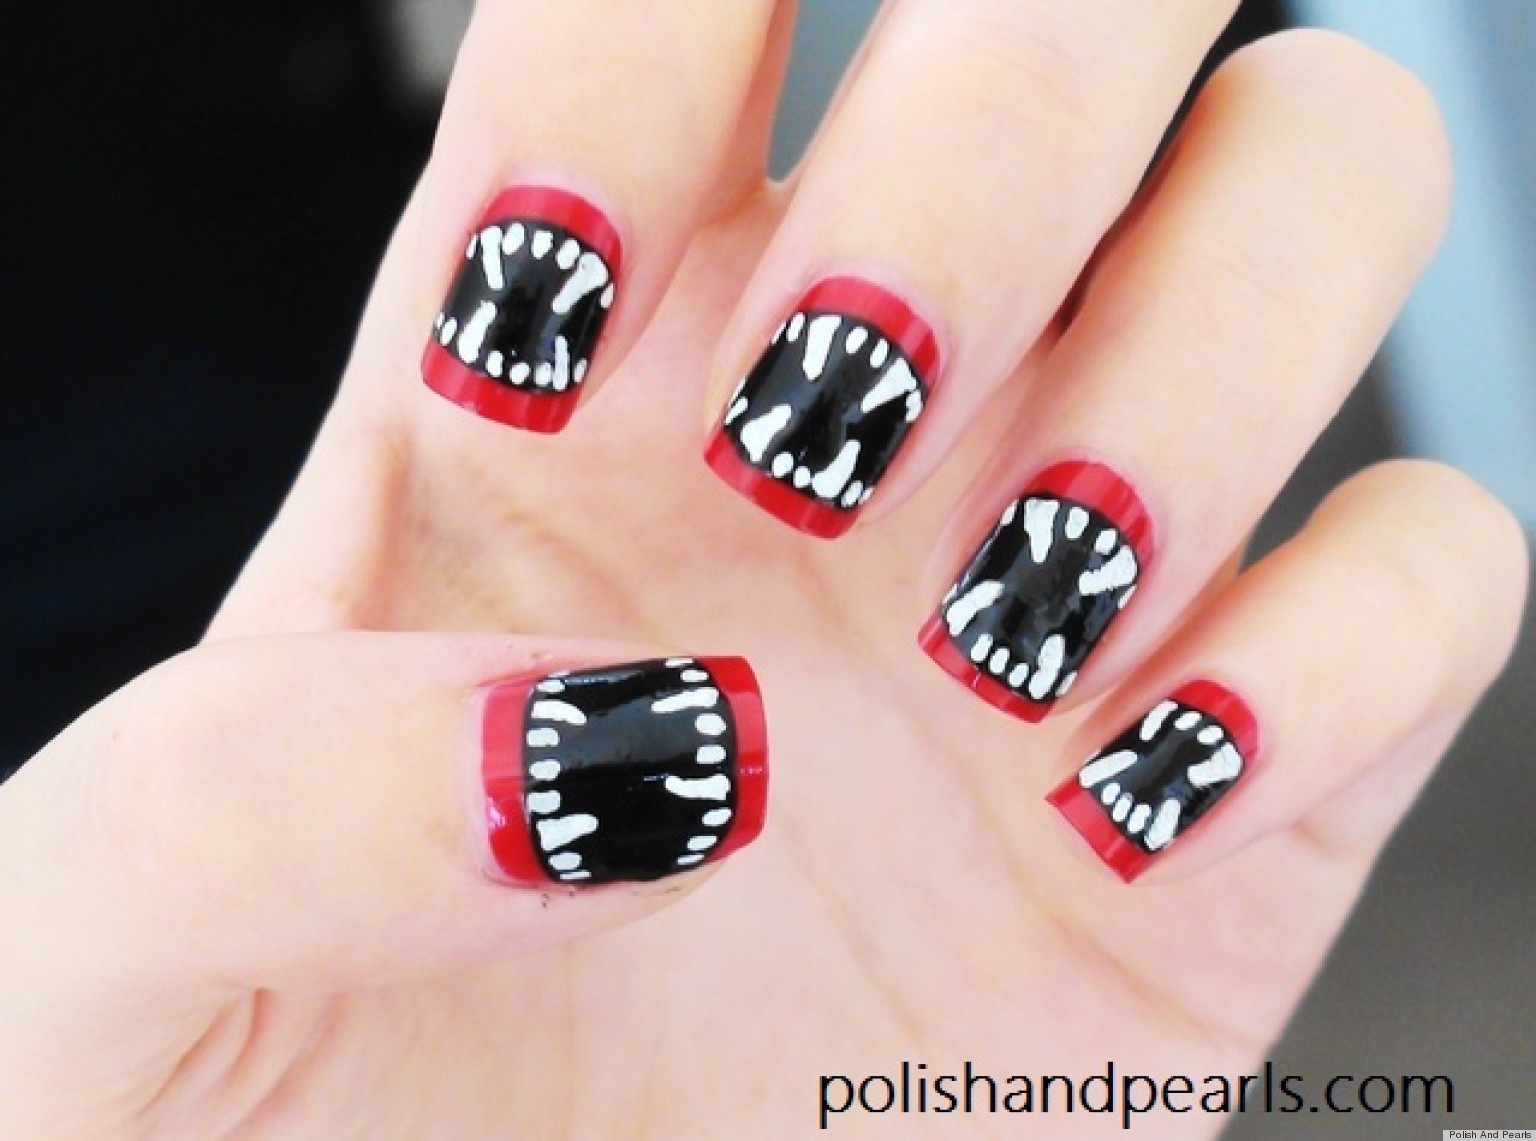 15 Halloween Nail Art Designs You Can Do At Home